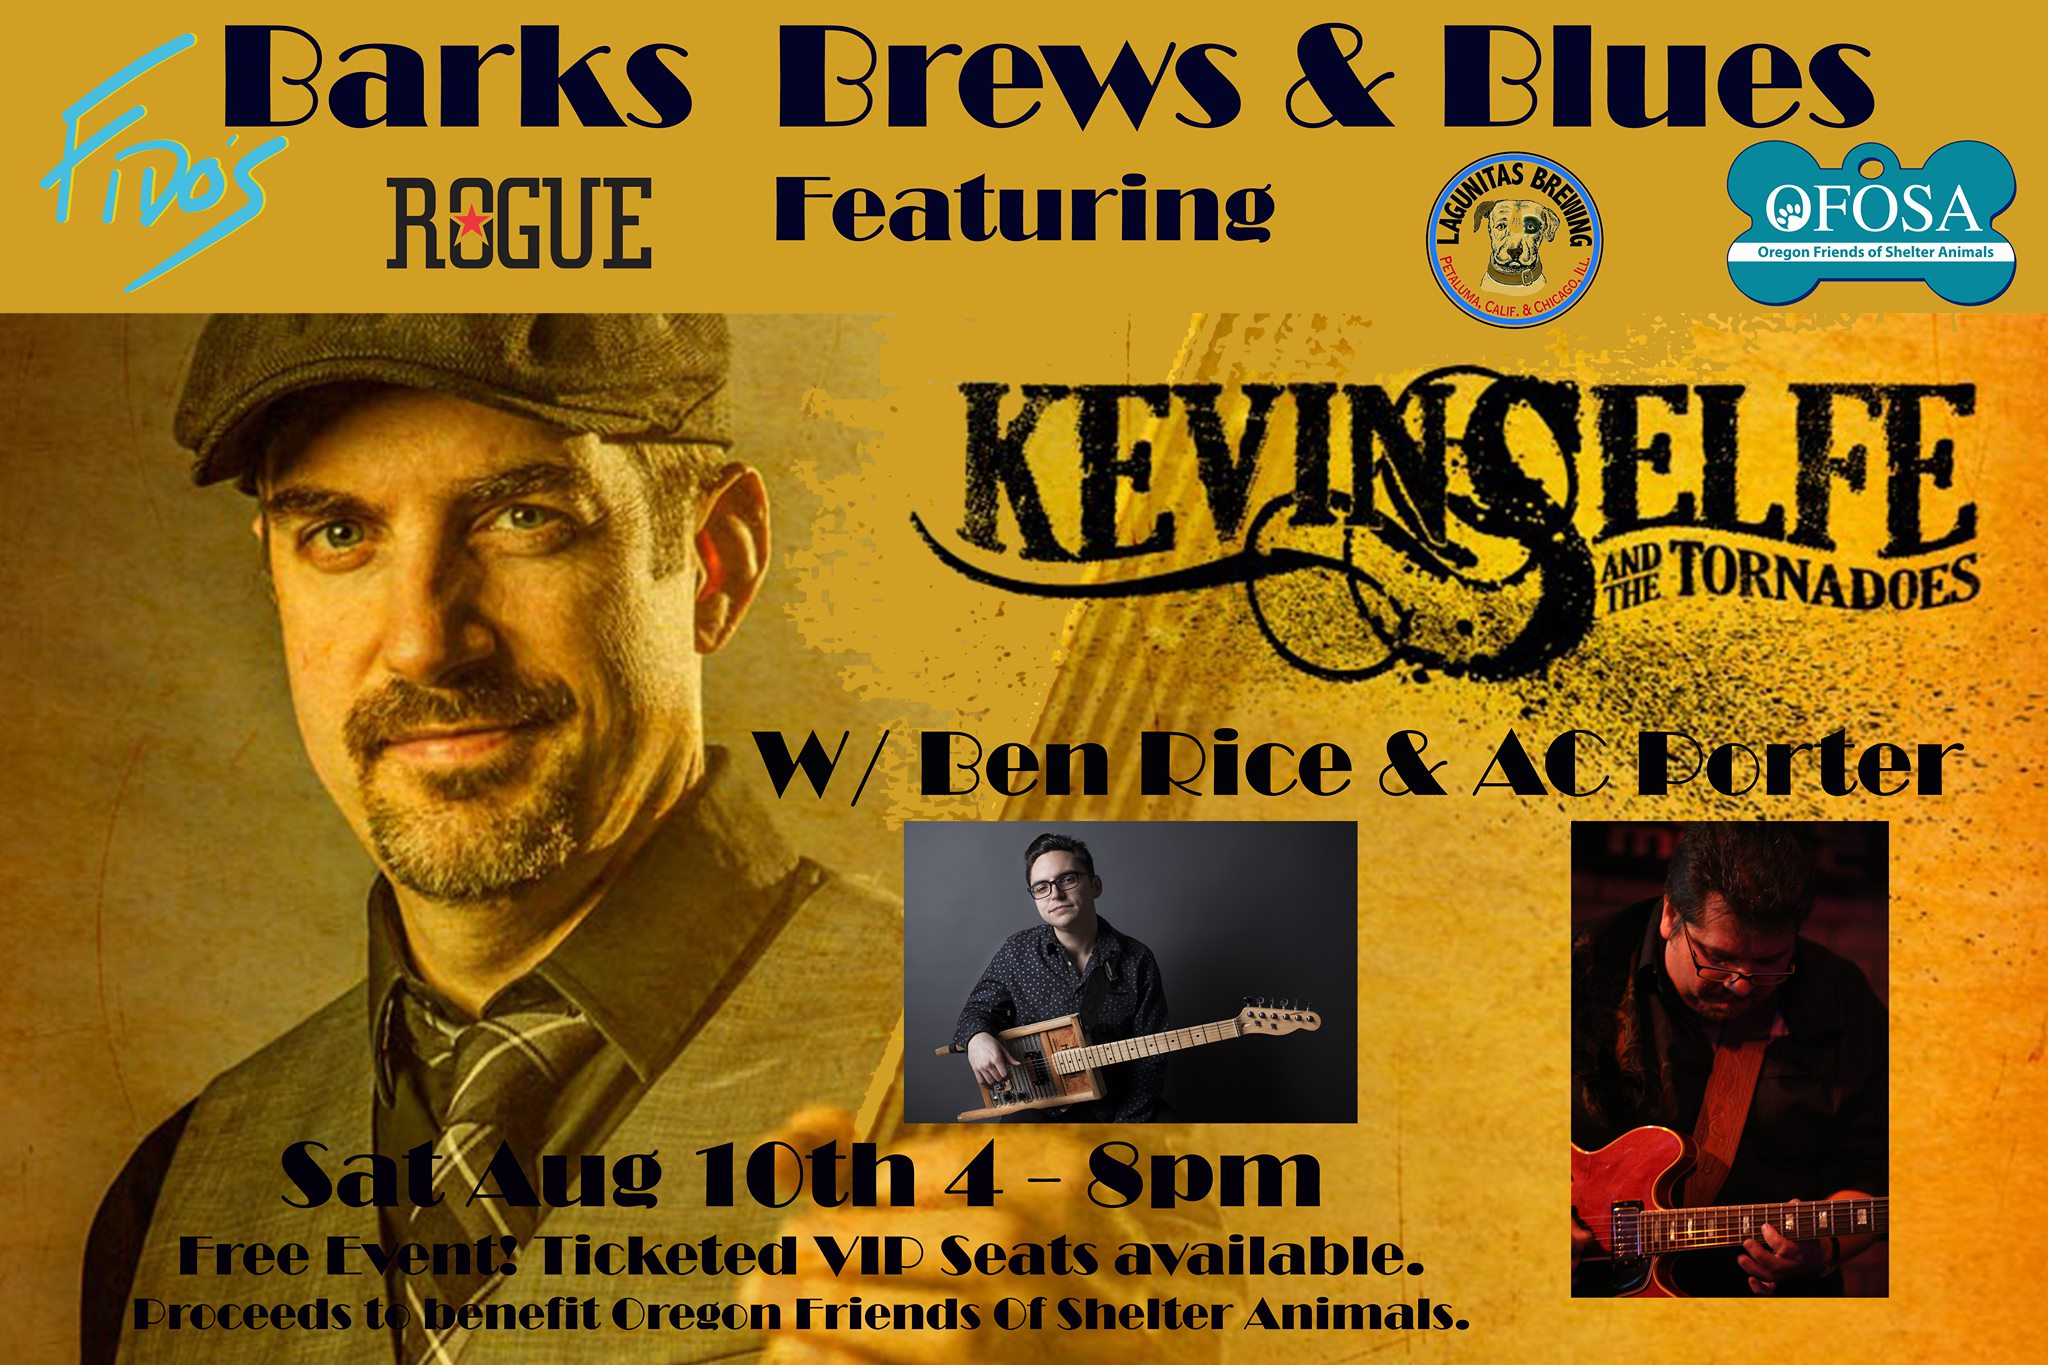 Barks Brews & Blues!